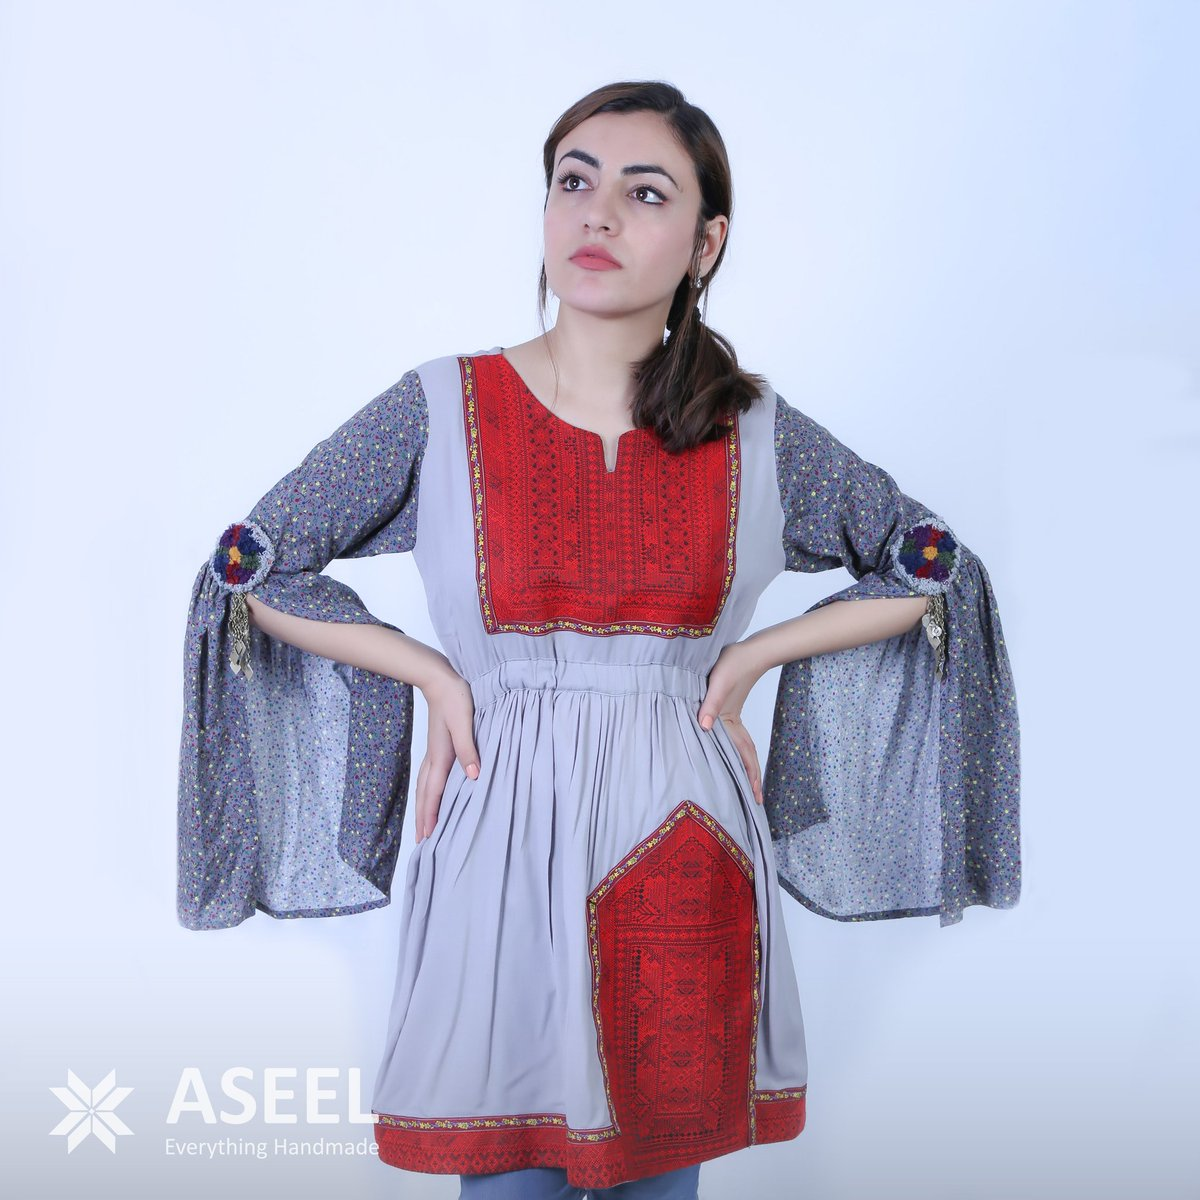 No fifty shades of grey here! Check out this grey and scarlet tunic from Jama Design. Flowing sleeves and embroidered details give it the perfect amount of unique flair. This and more from Jama on #ASEEL.  #dress #dresses #instatags #clothes #fashion #style #amazingdress <br>http://pic.twitter.com/9tjagYeDsK